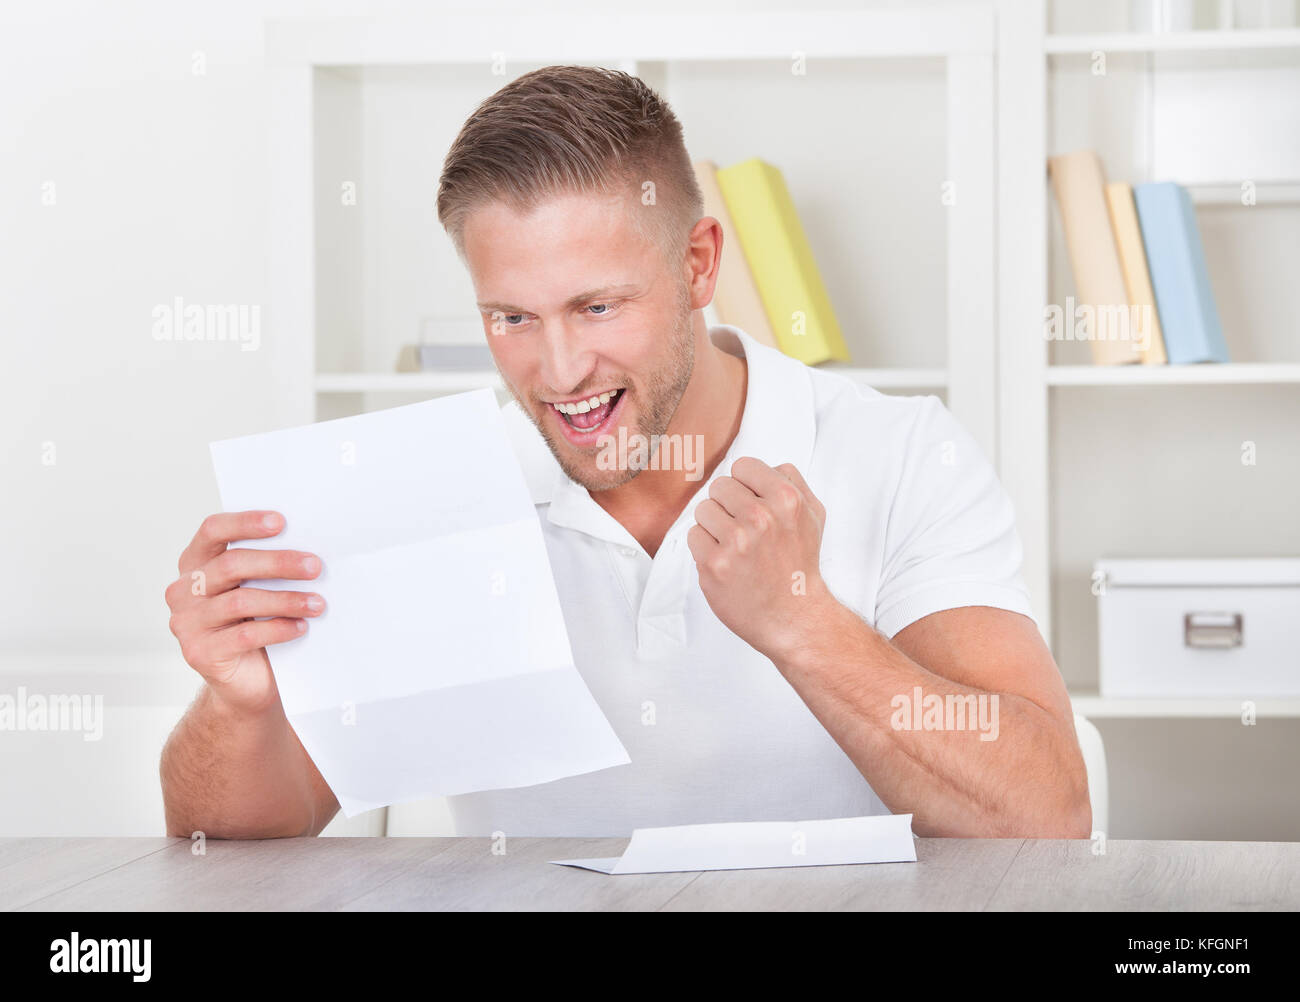 Man cheering in jubilation as he reads a letter punching the air with his fist as he reads the good news - Stock Image